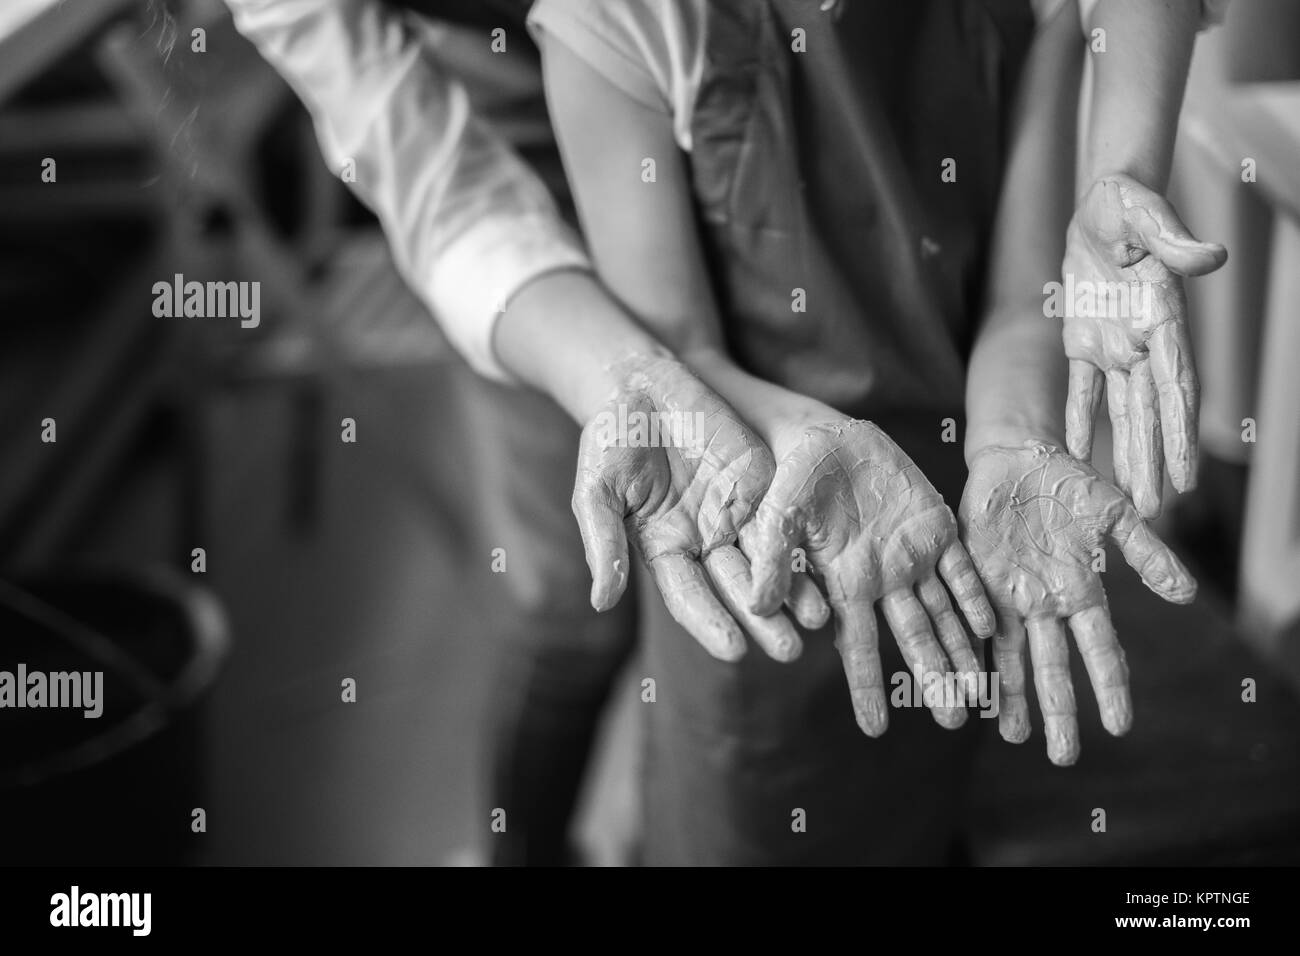 Potter's hands and children's hands in clay - Stock Image